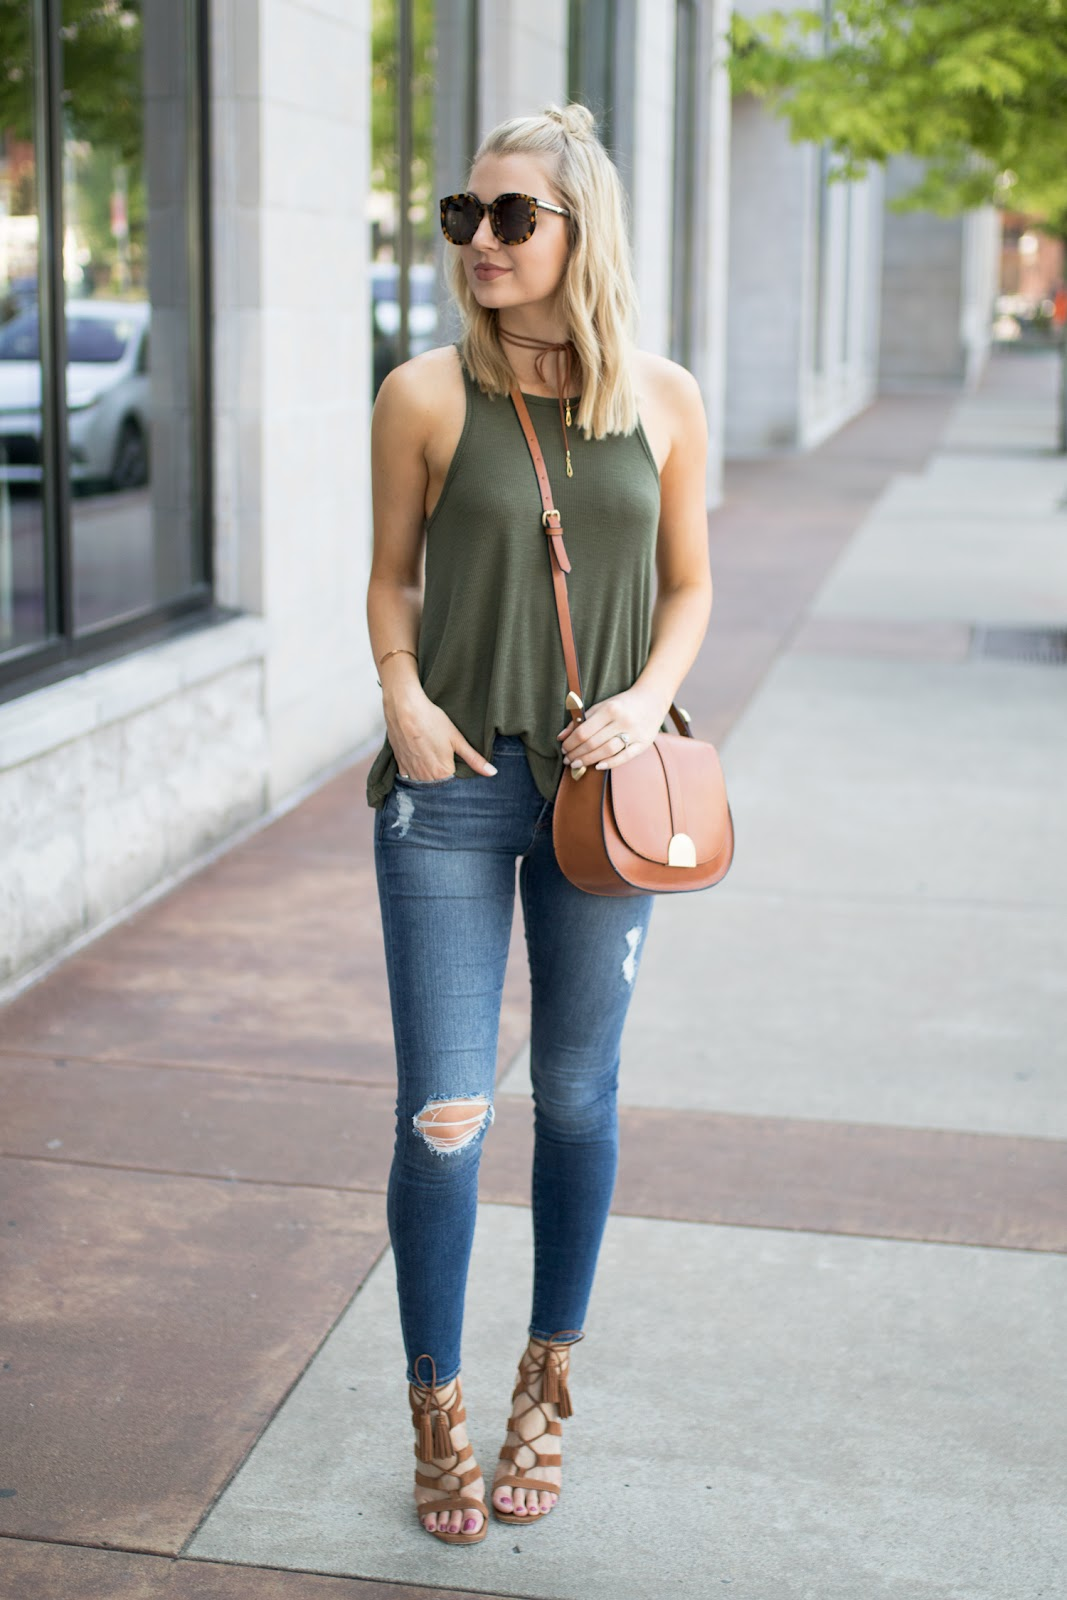 Free People tank with distressed jeans